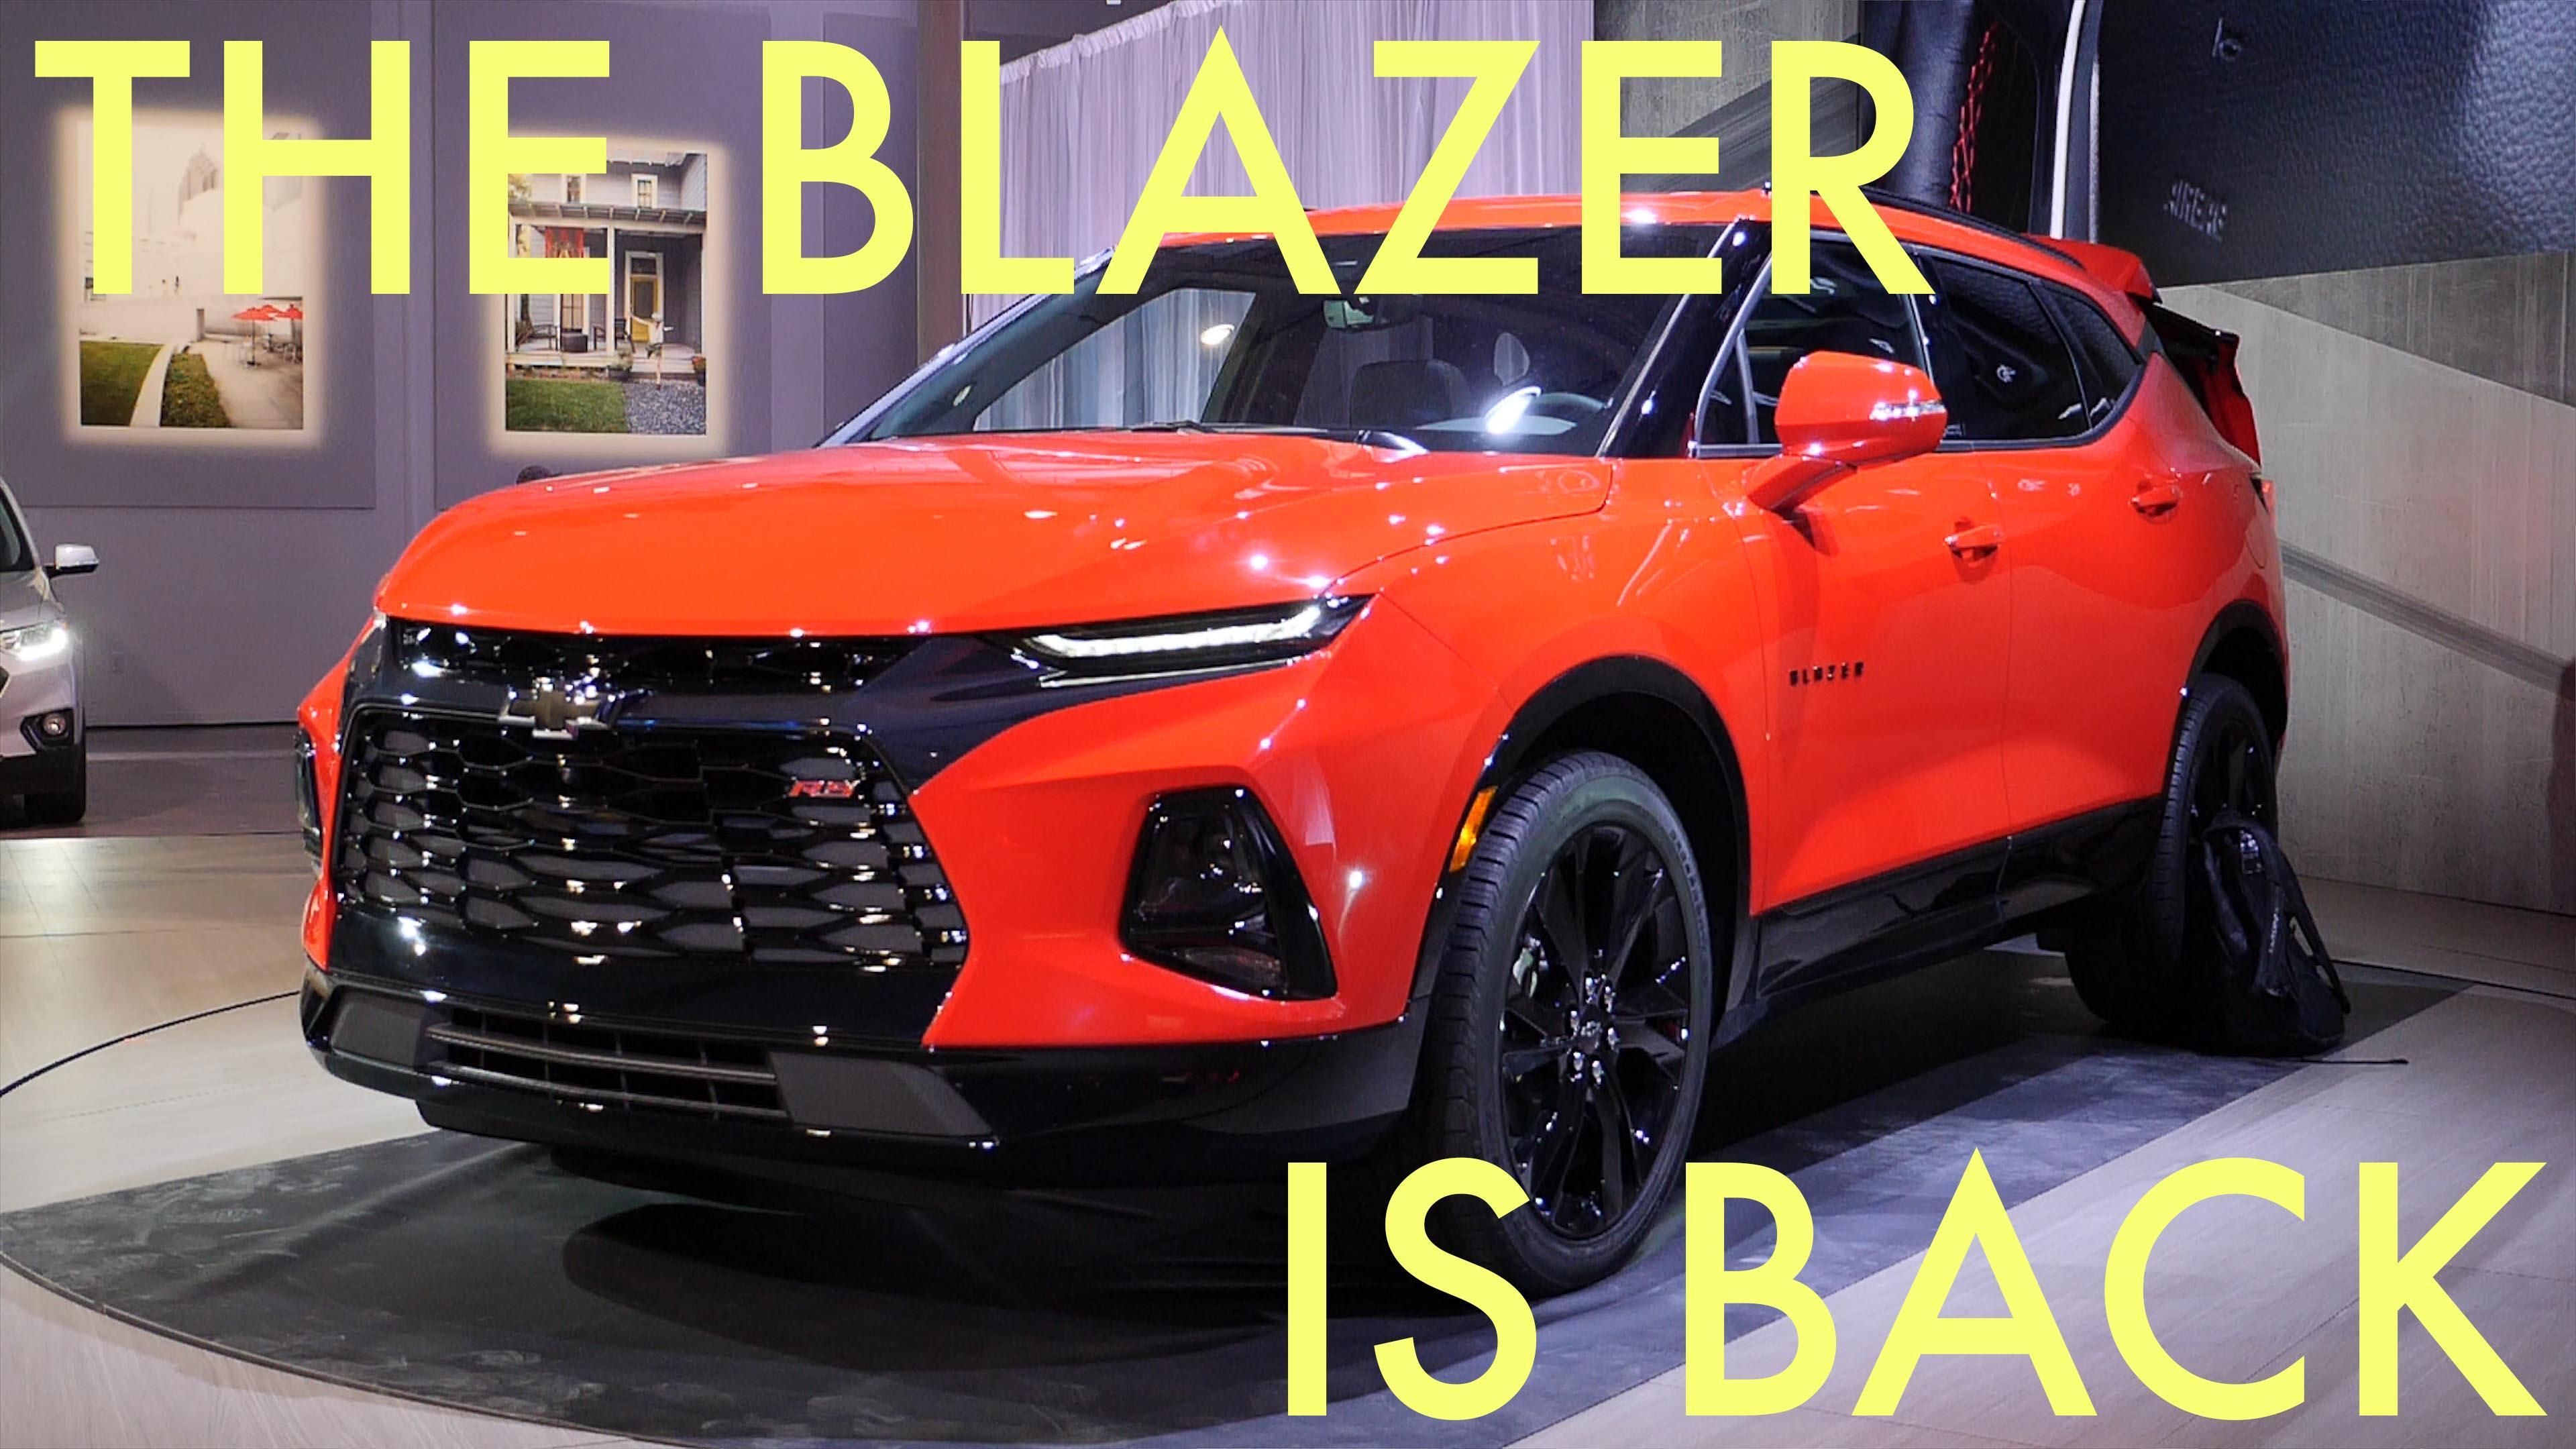 2019 Chevy Blazer 29 995 Is Only The Starting Point Not A Bargain